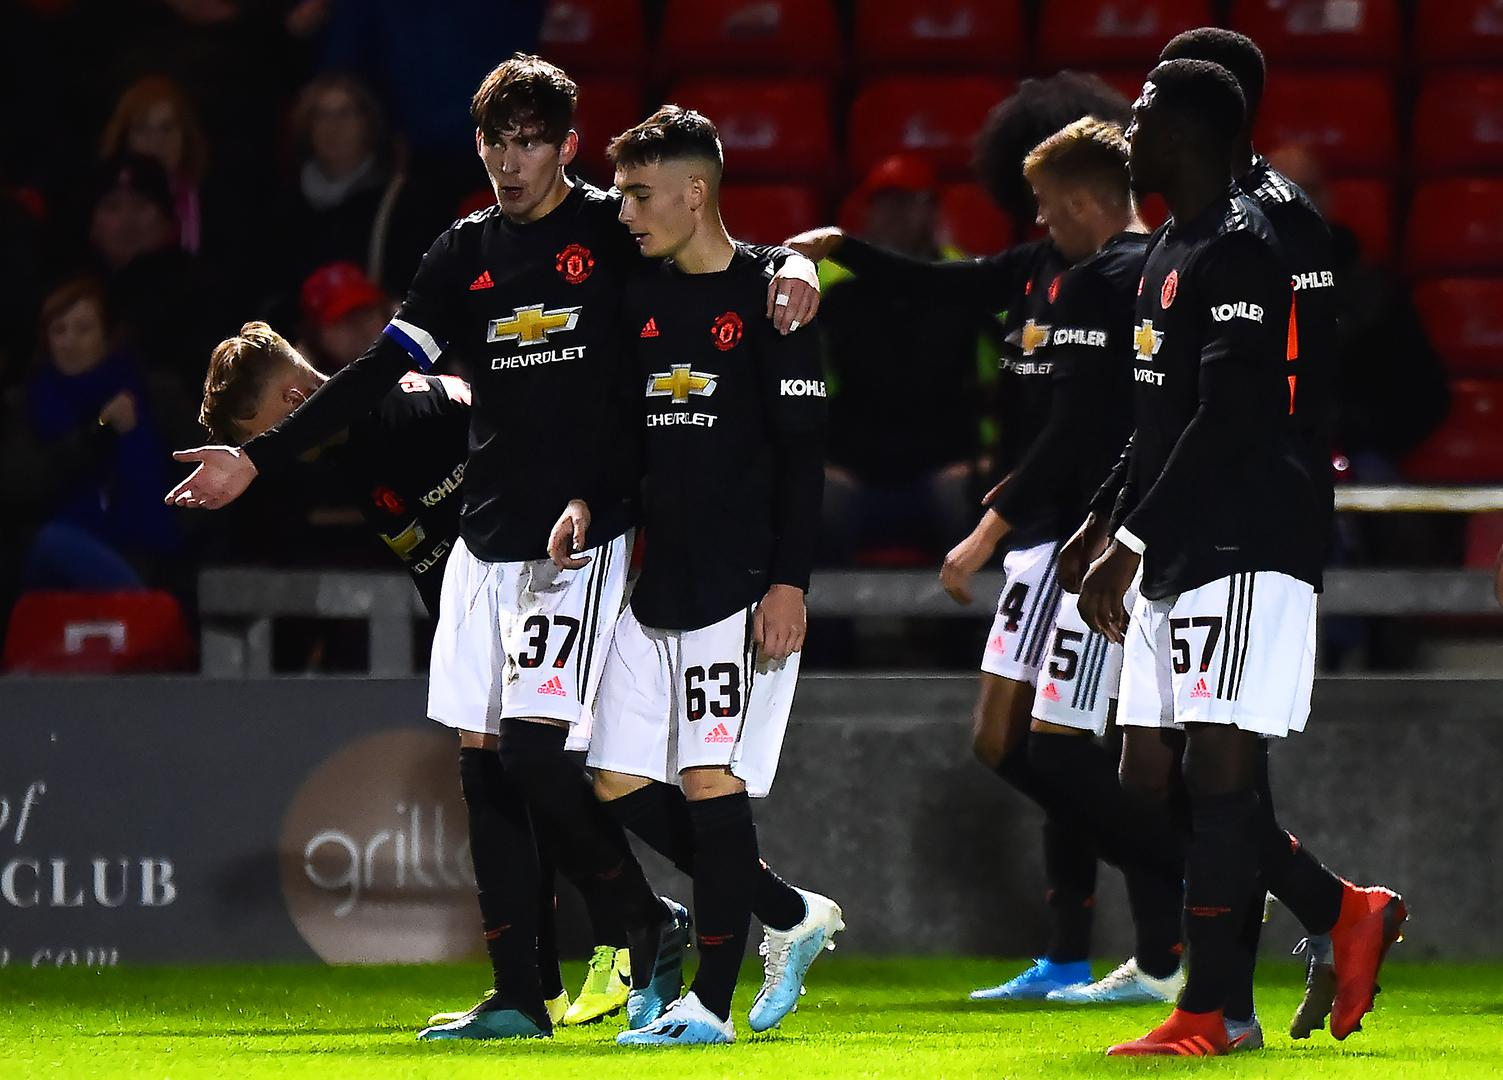 James Garner talks to his Manchester United Under-21 team-mates after scoring the winning goal at Lincoln City